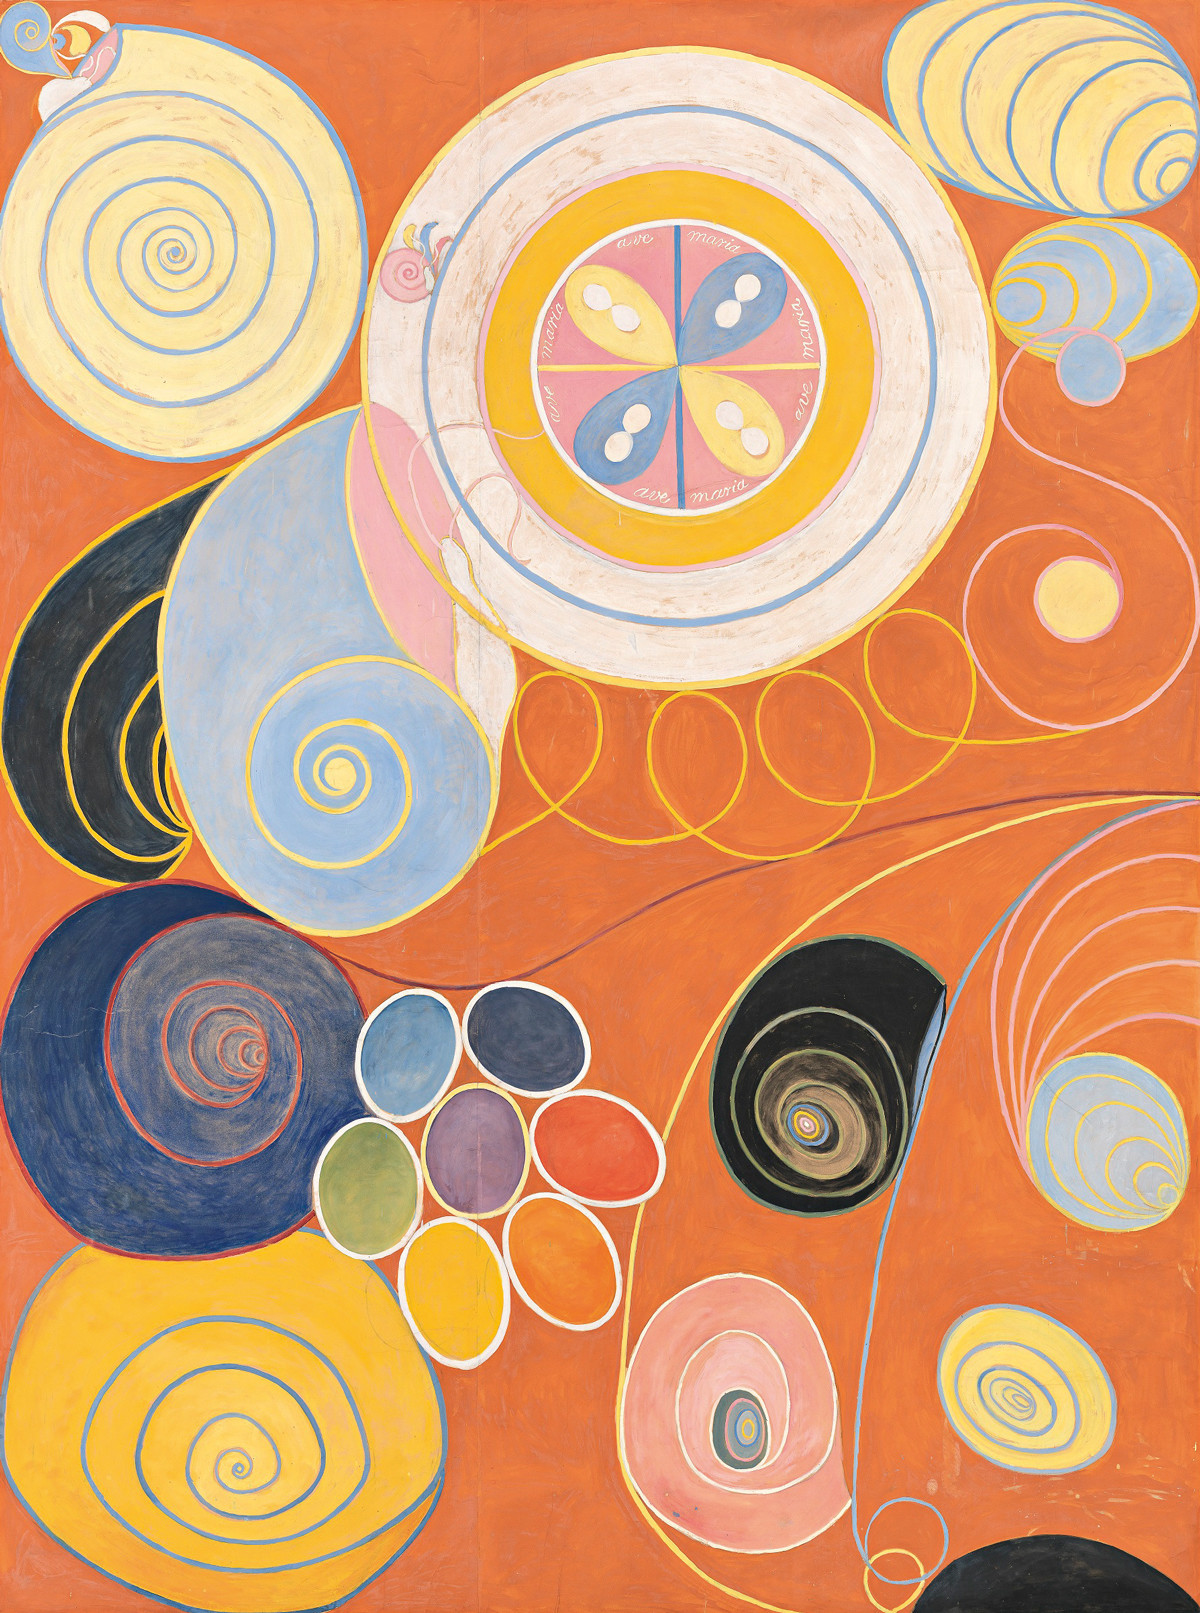 Who Painted the First Abstract Painting?: Wassily Kandinsky? Hilma af Klint? Or Another Contender? Artes & contextos hilma af klint group iv no 3 the ten largest youth 1907 trivium art history